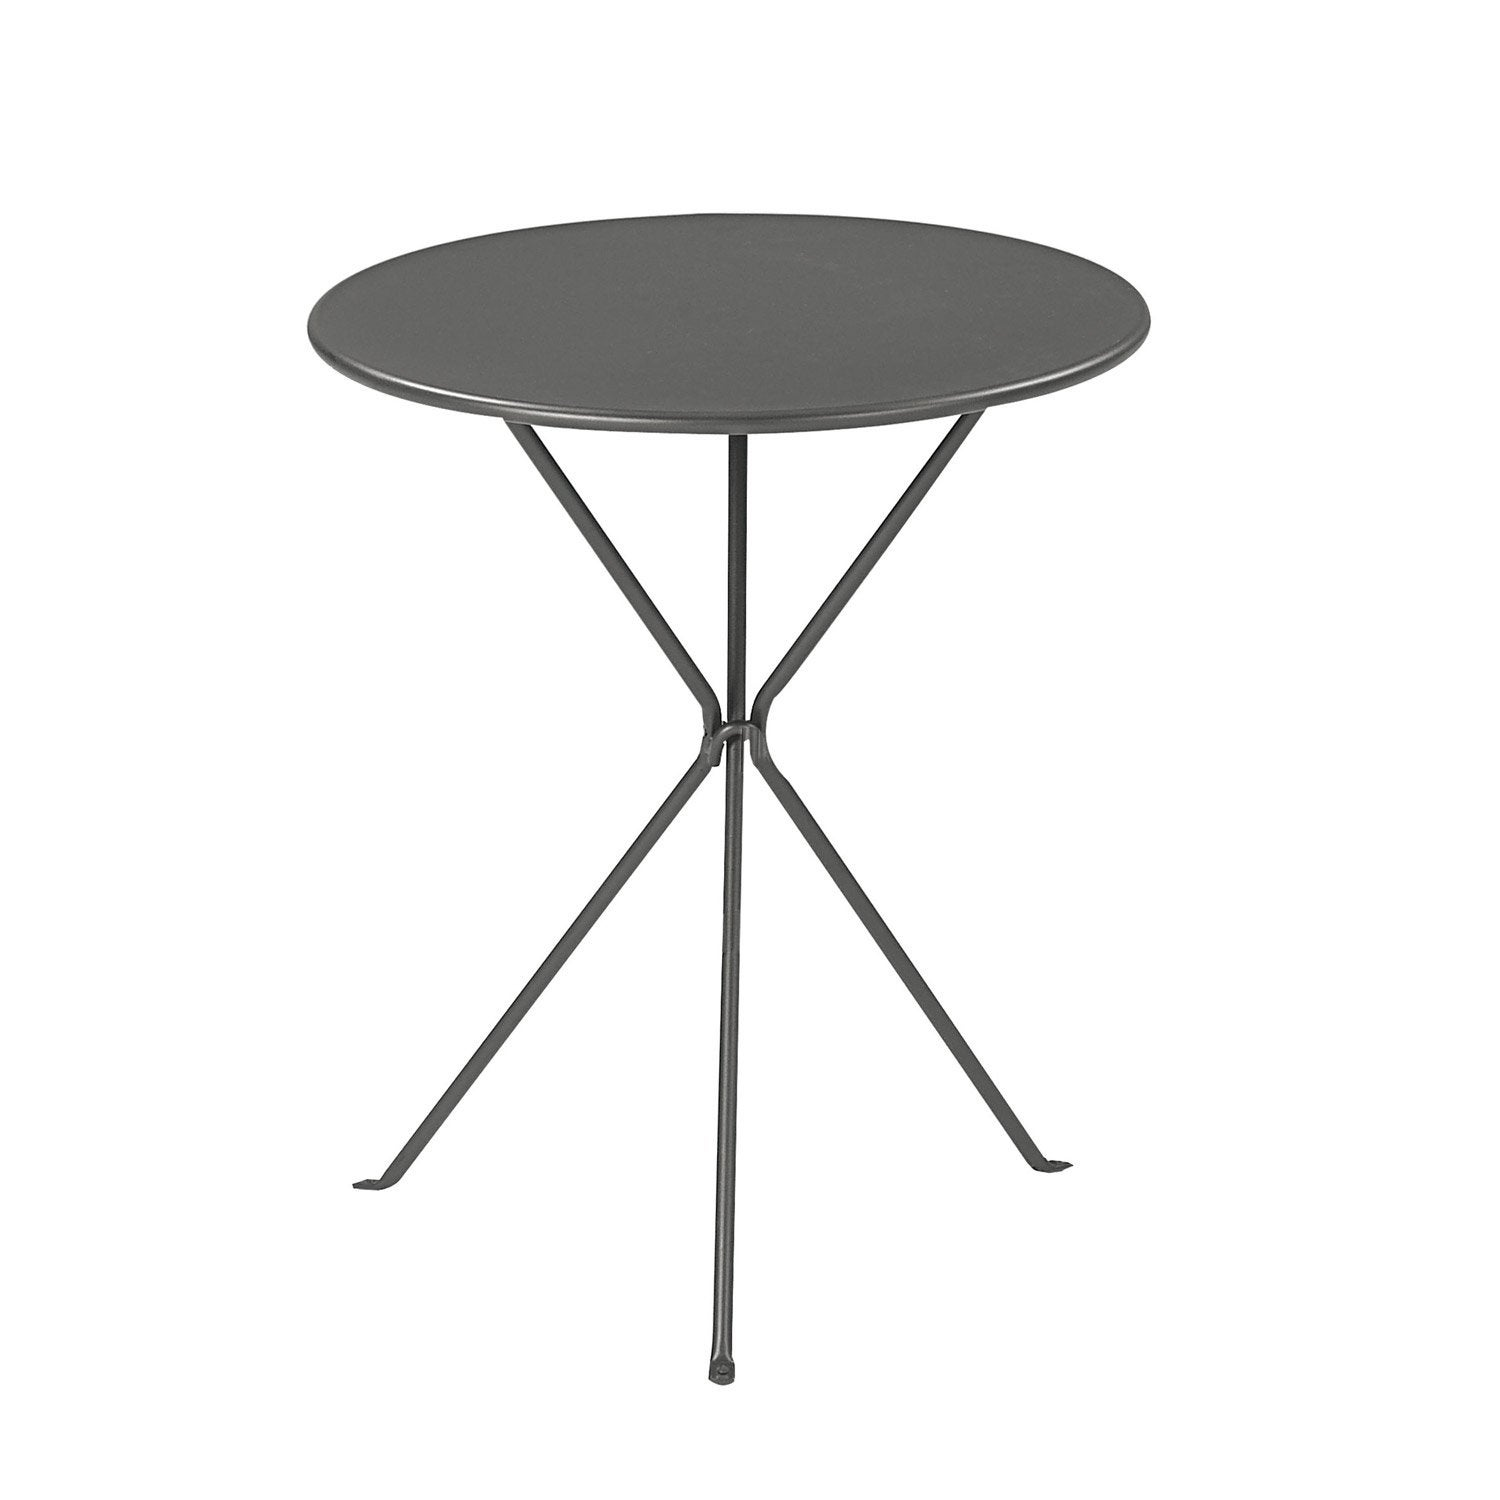 Table de jardin ronde gueridon oasi by emu leroy merlin for Table exterieur noire